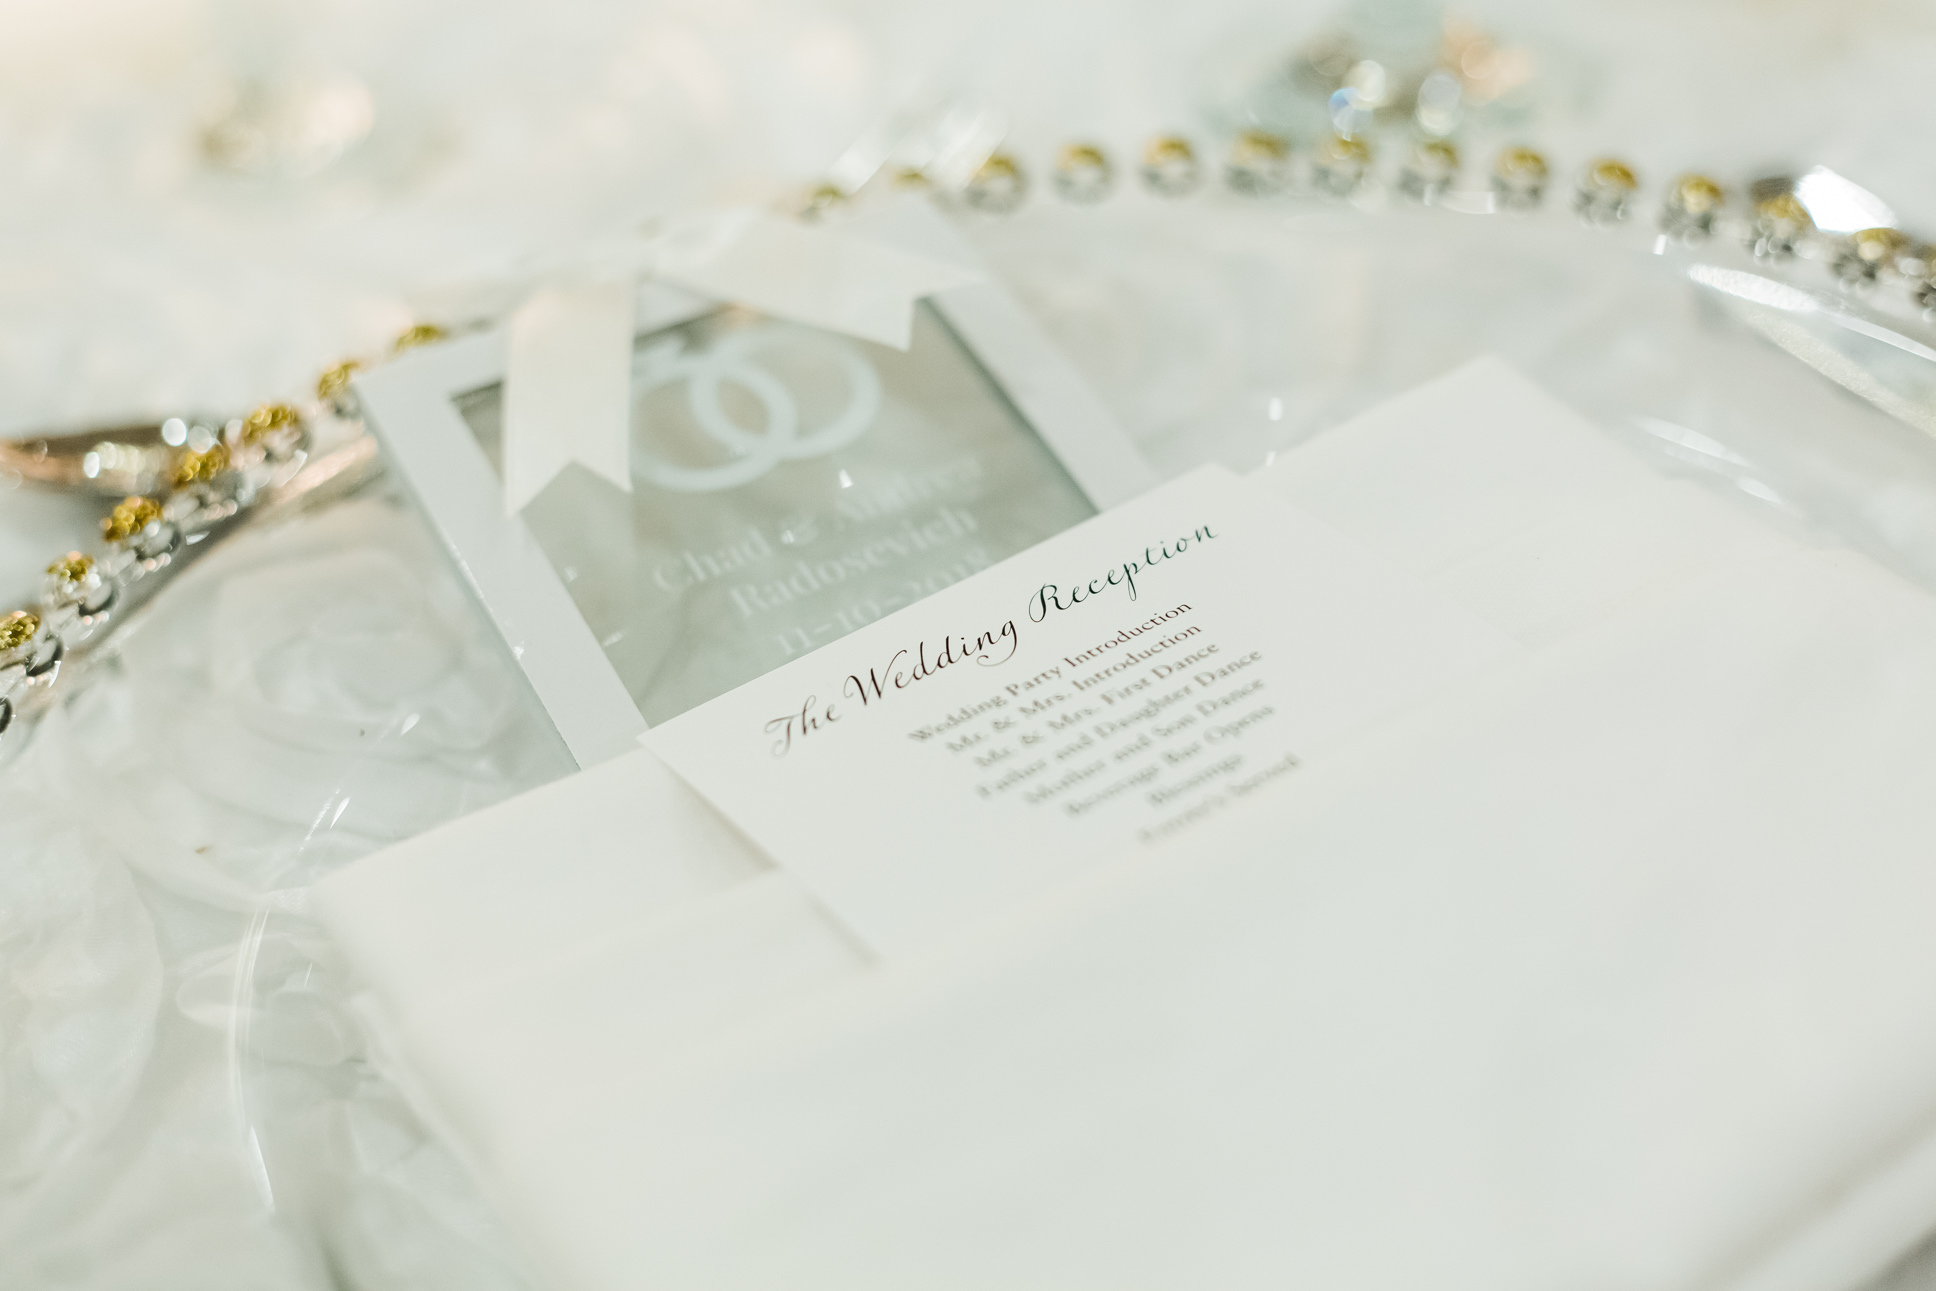 Classic Wedding Reception Program in White Linen on Gold Beaded Charger   Tampa Bay Wedding Stationery URBANcoast